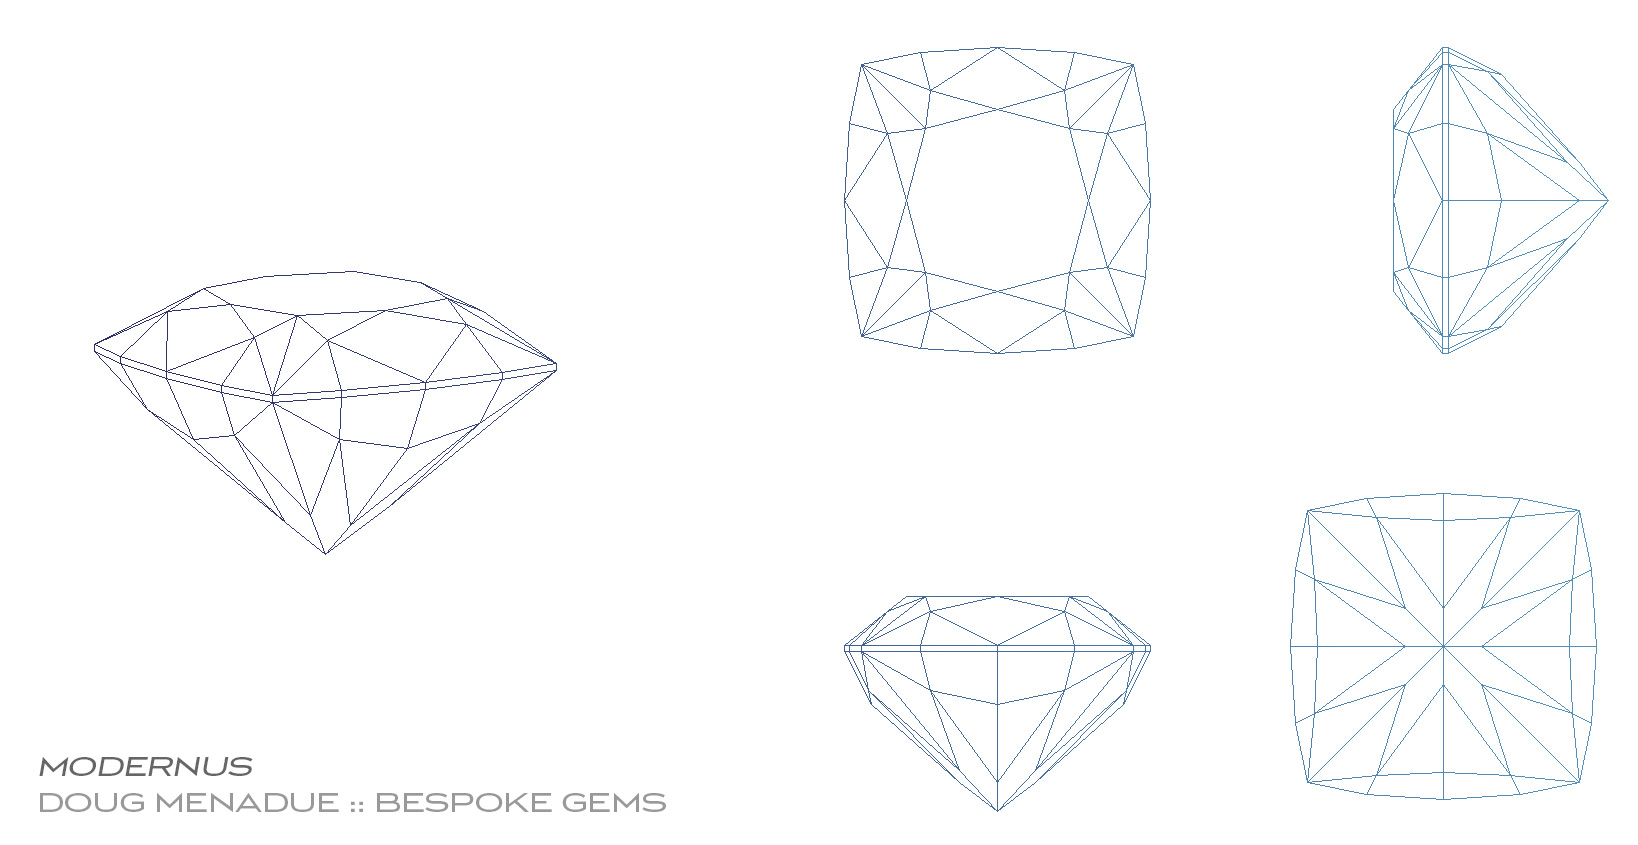 Rhapsody Square - A unique design created by bespoke artisan gemcutter, Doug Menadue :: Bespoke Gems. This design is perfect for sapphires, aquamarine, topaz, tourmaline, garnets, zircons.